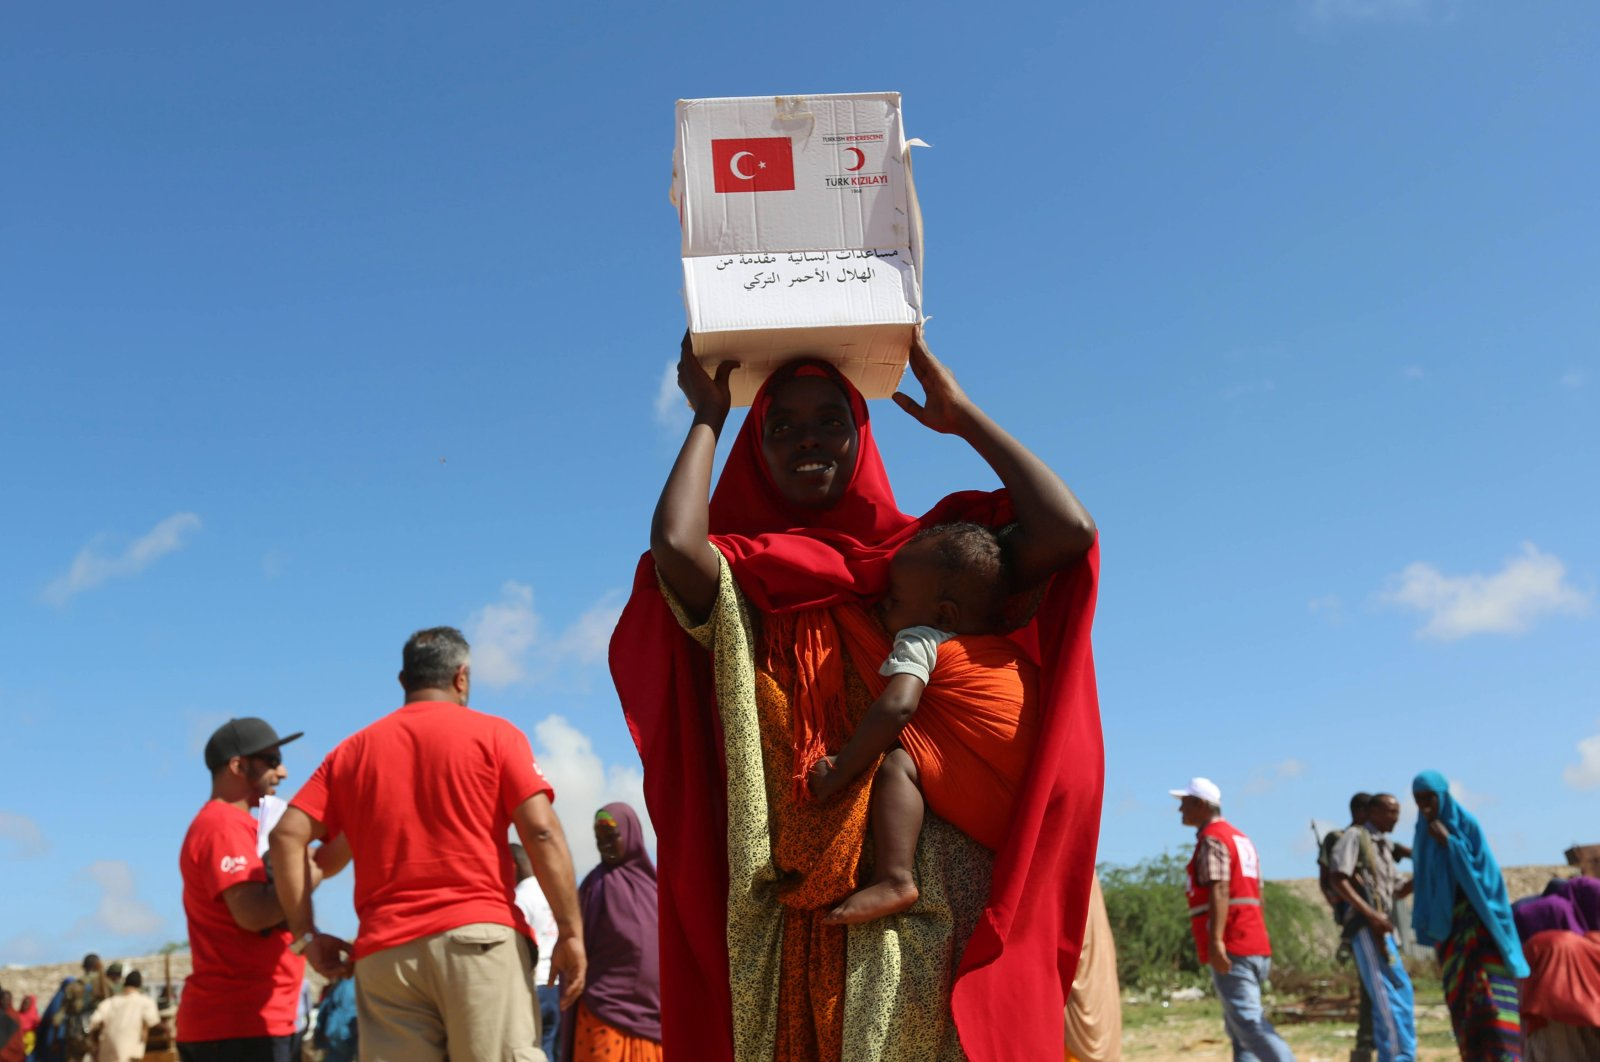 A displaced Somalian woman carries a box of food distributed by the Turkish Red Crescent in a camp in Mogadishu, Somalia, May 23, 2017. (REUTERS)